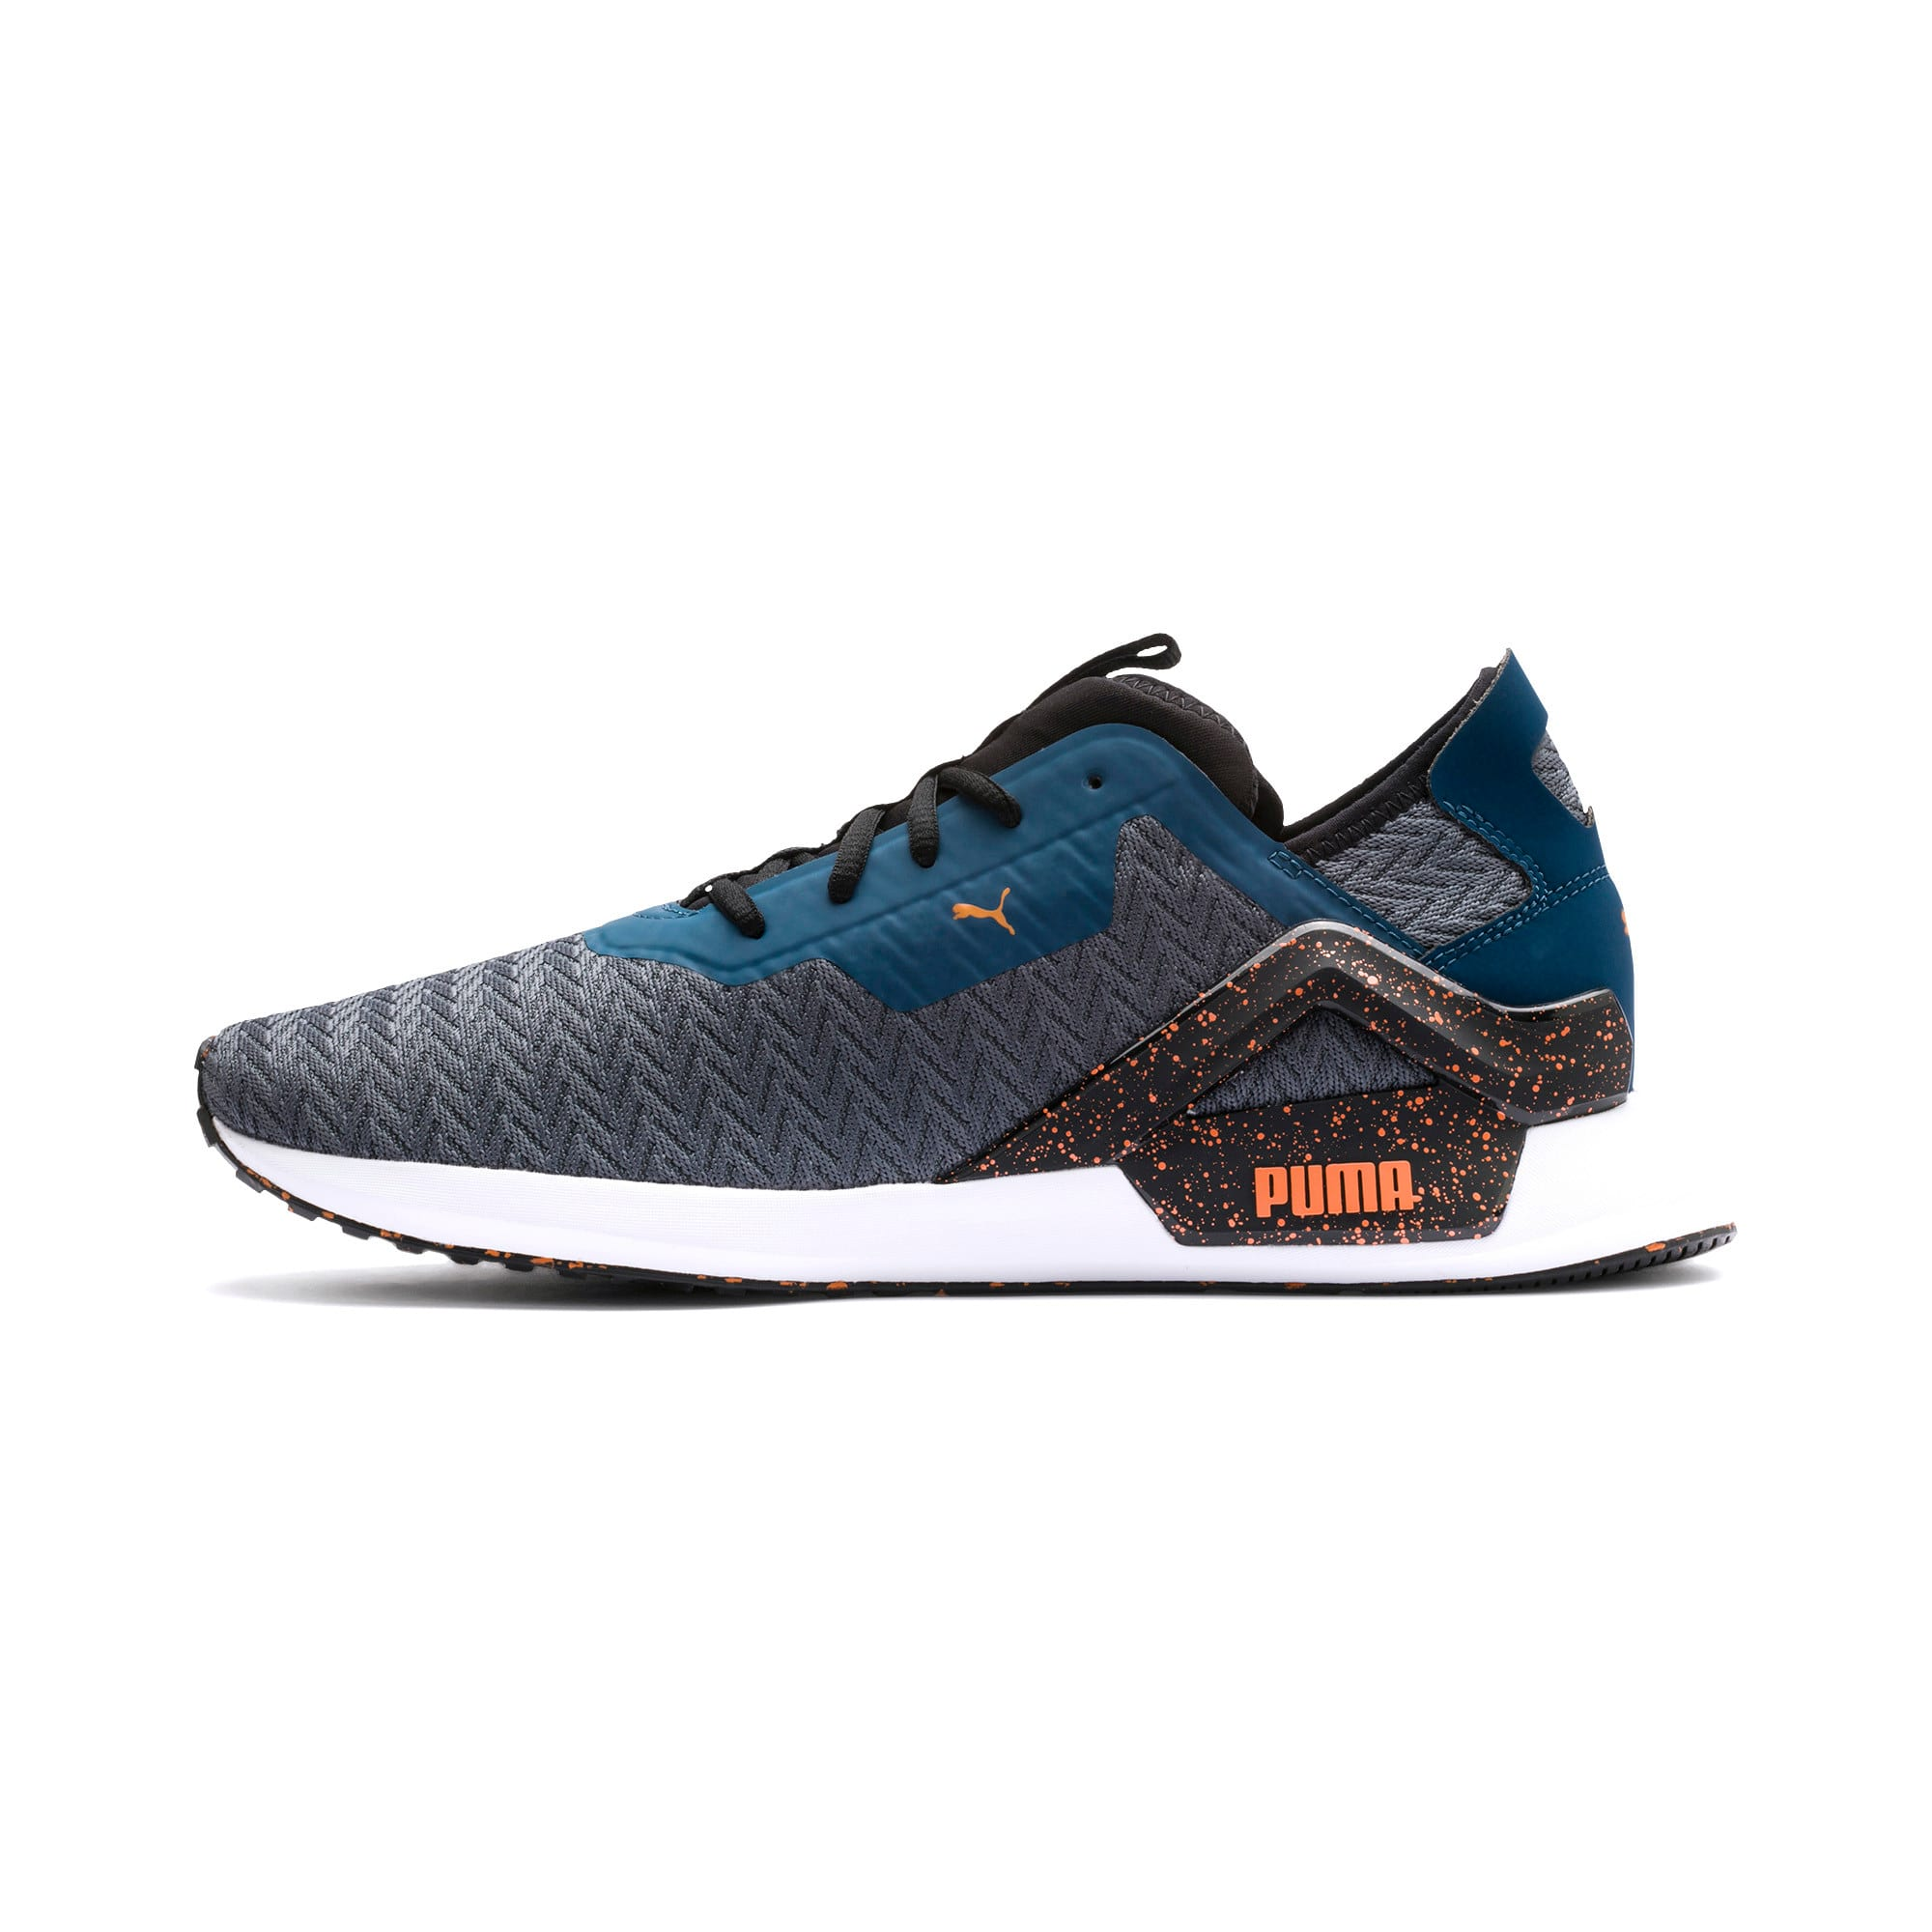 Thumbnail 1 of Rogue X Terrain Herren Sneaker, CASTLEROCK-Gibr Sea-J Orange, medium